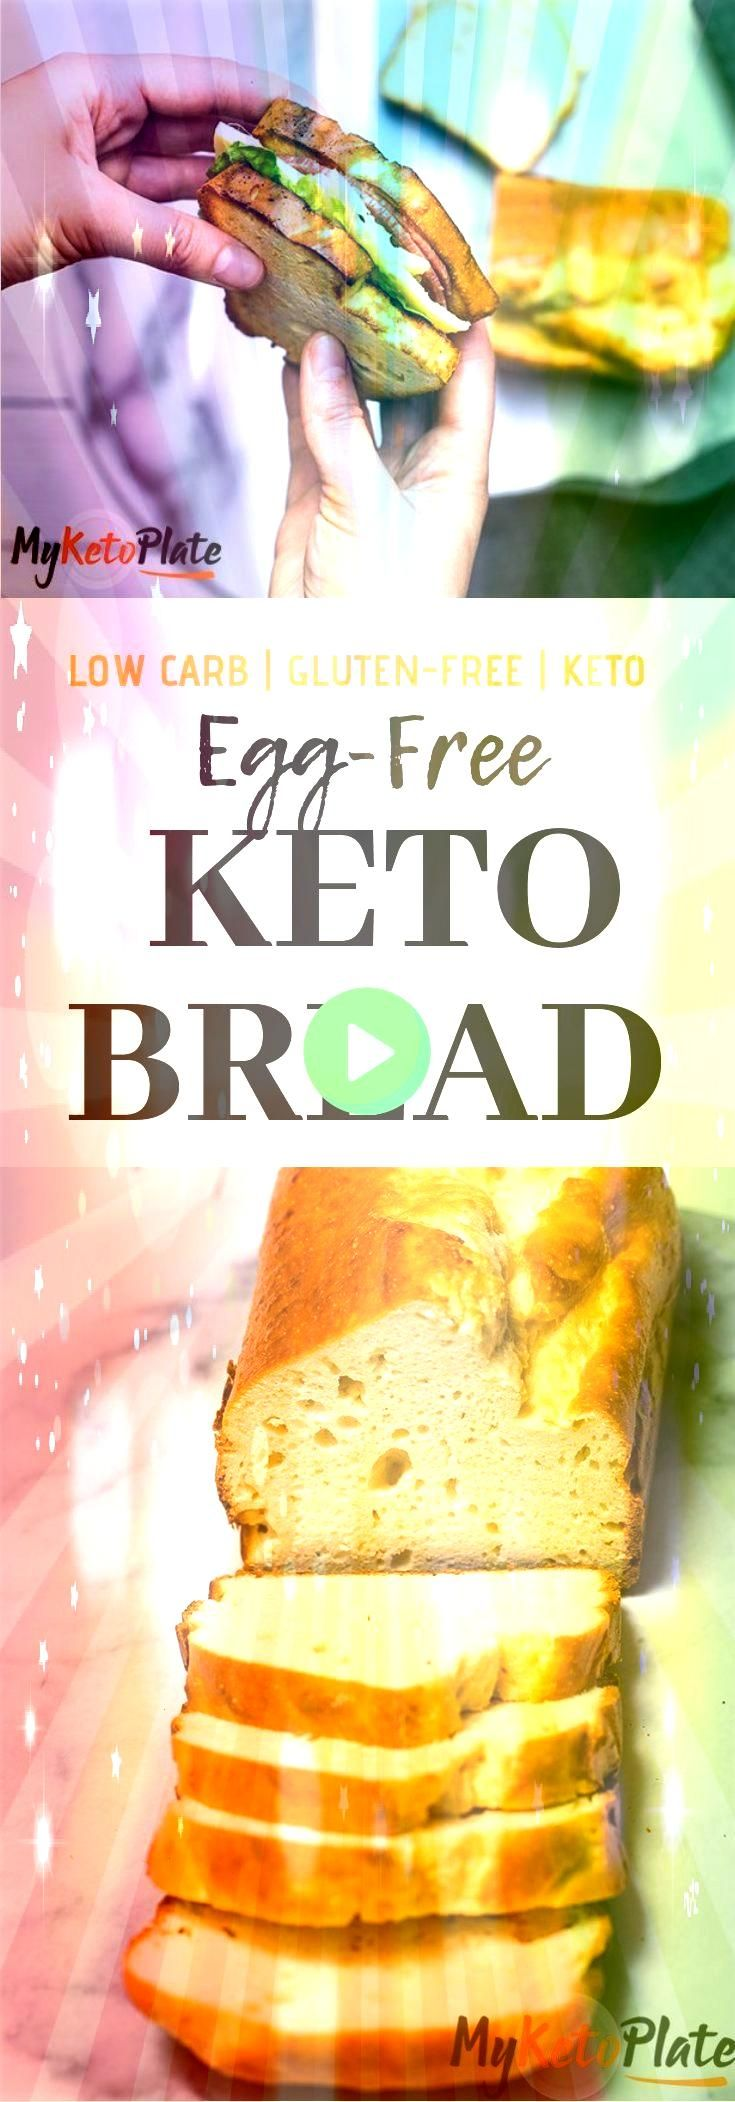 eggfree keto bread is the best bread recipe Ive ever tried and Im sure youll love it too It has no eggy taste has the perfect texture for sandwiches or toasted with butte...